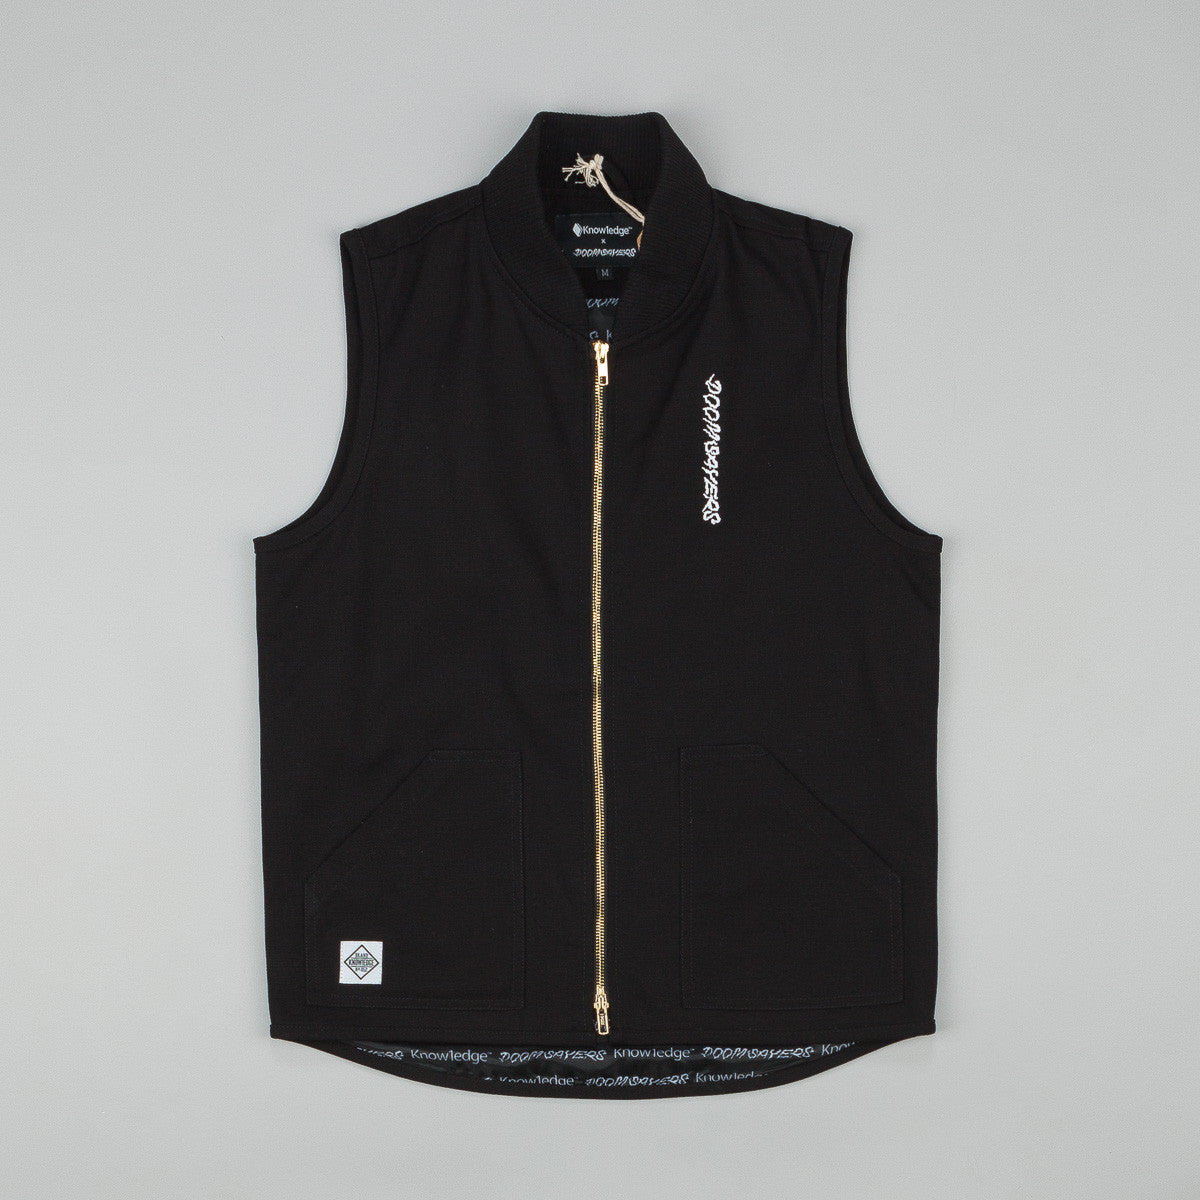 Doom Sayers X Know1edge Vest